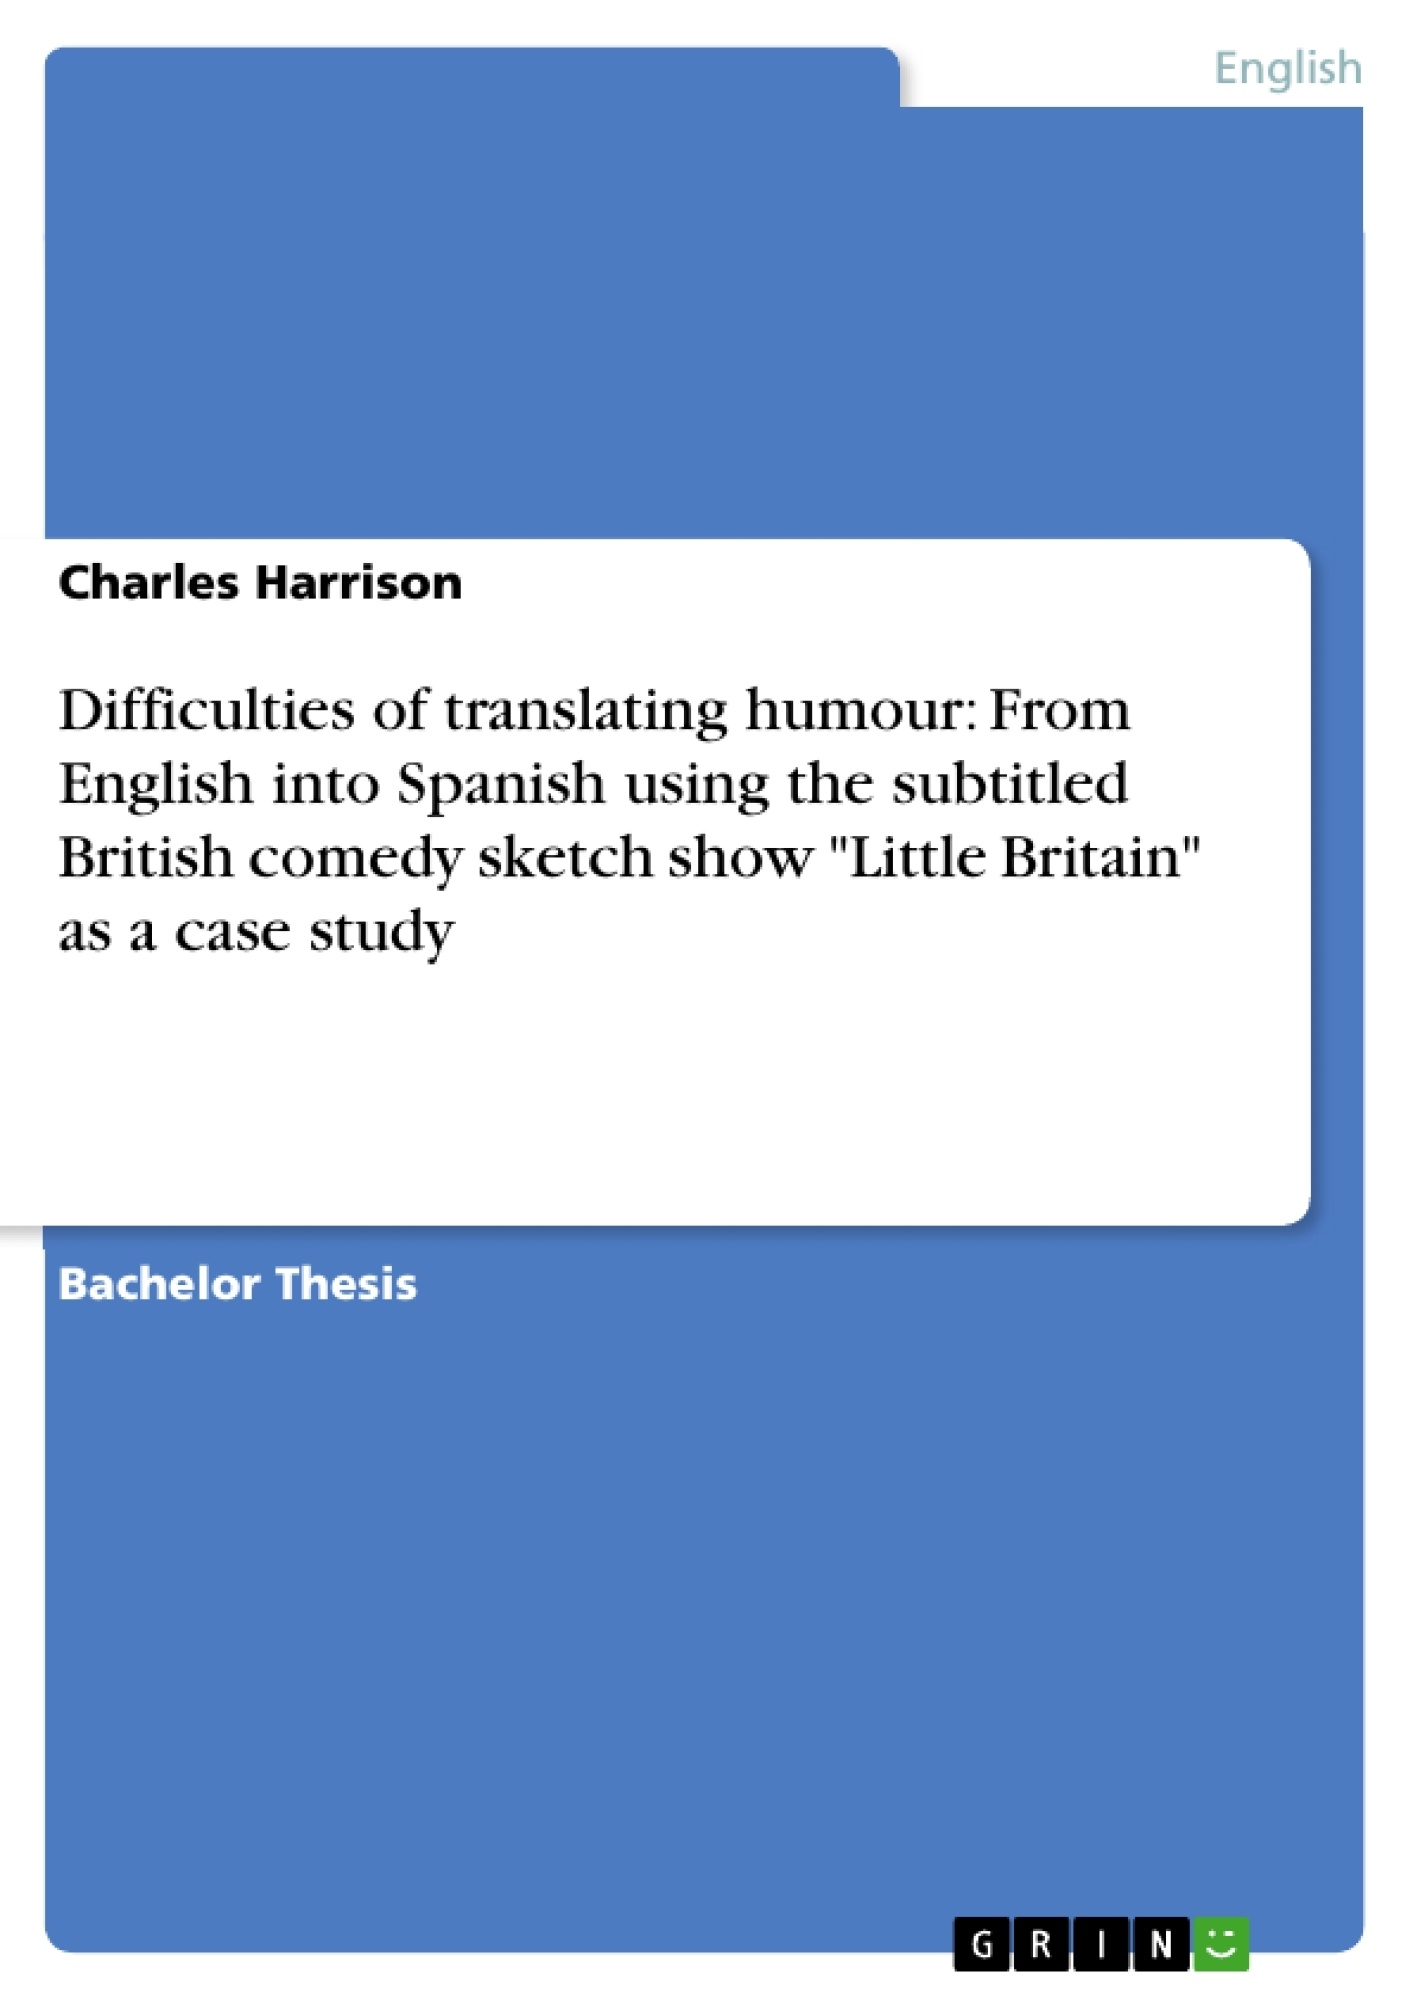 """Title: Difficulties of translating humour: From English into Spanish using the subtitled British comedy sketch show """"Little Britain"""" as a case study"""